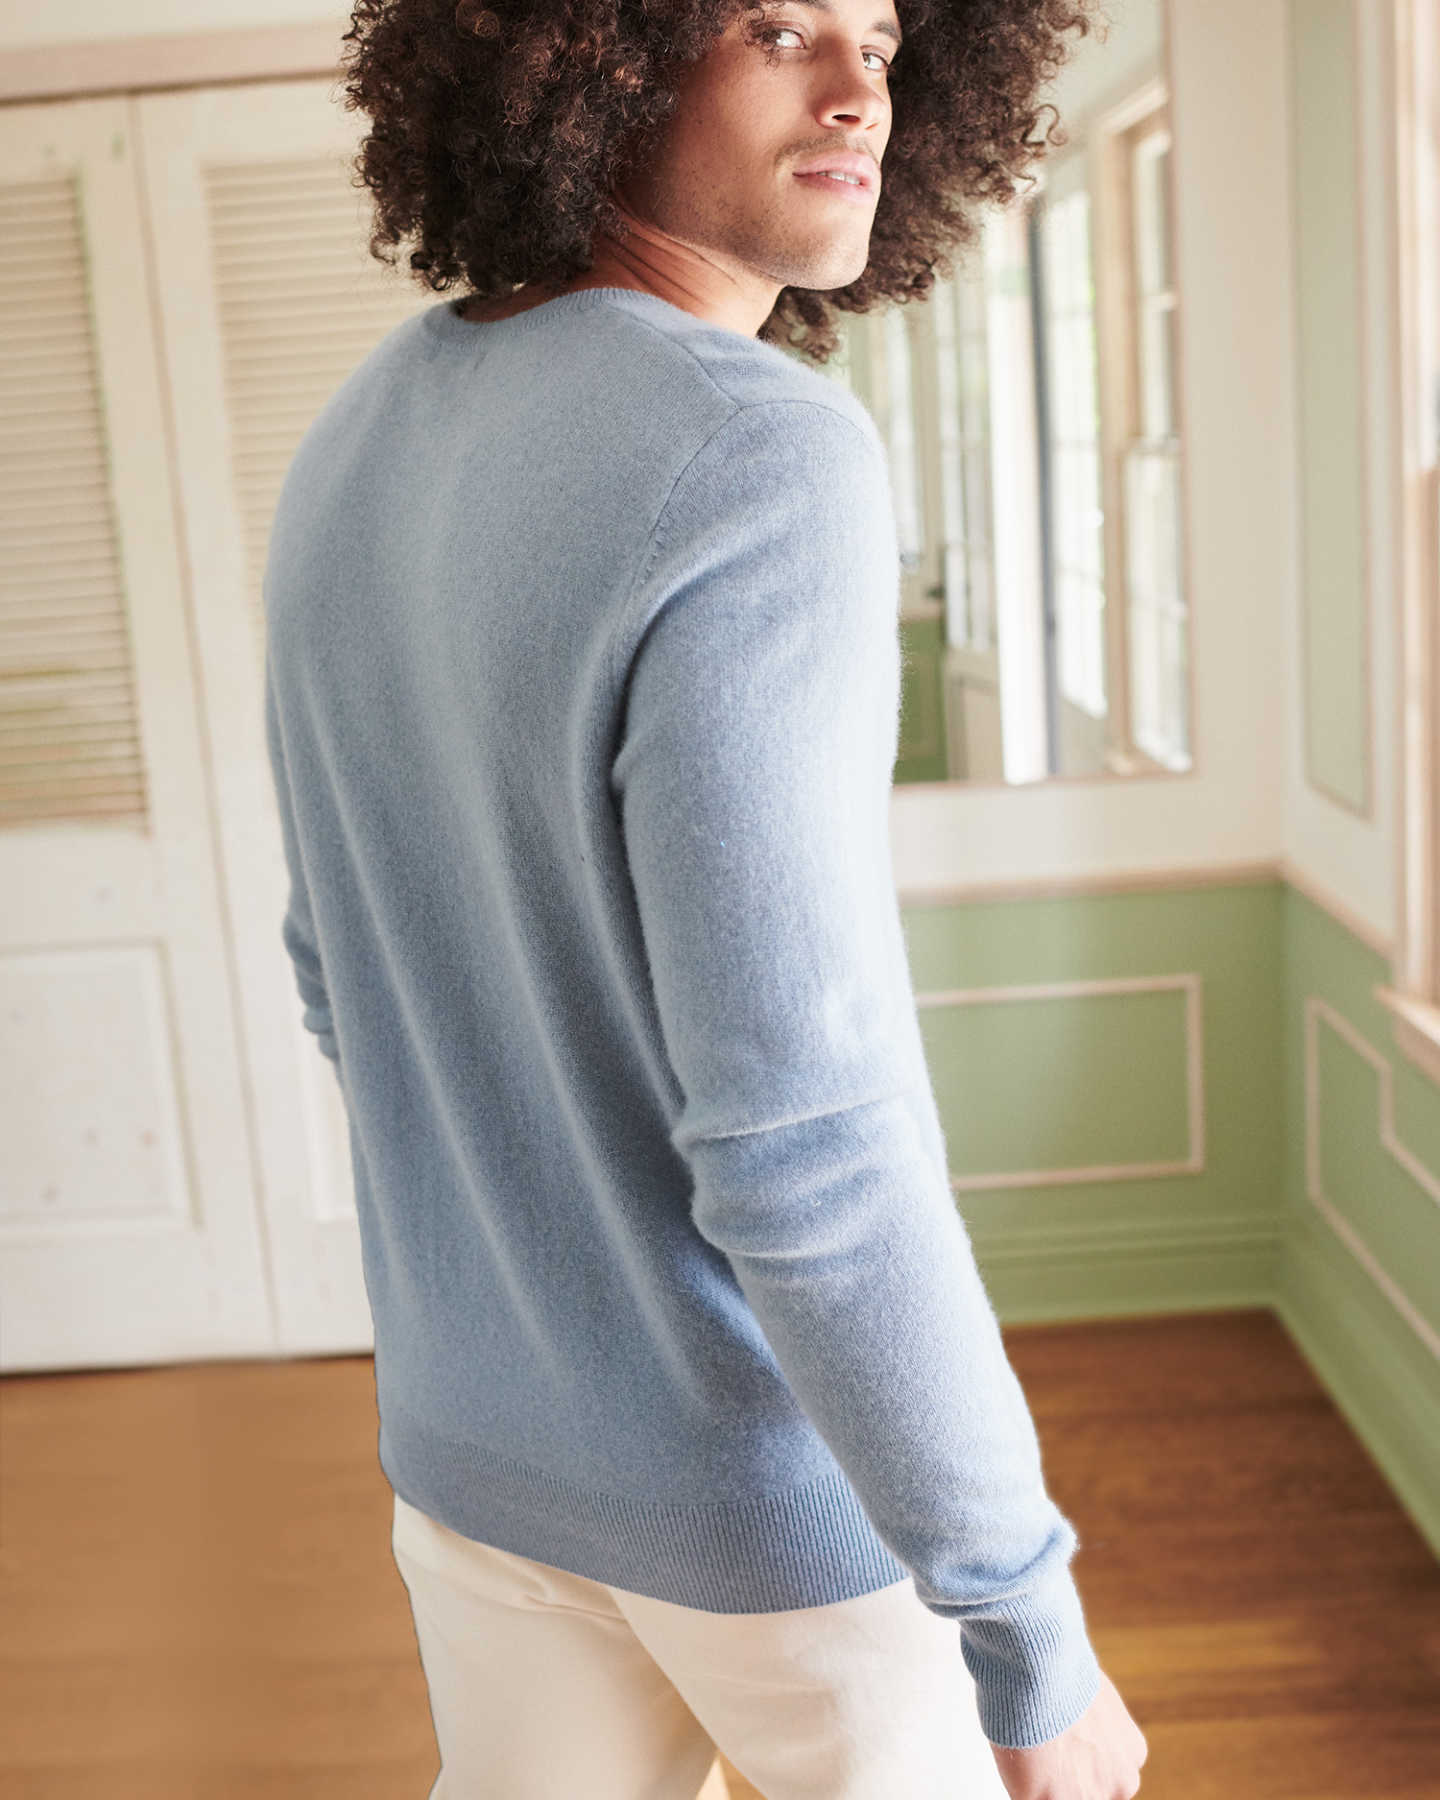 Man wearing blue cashmere v-neck sweater for men from back